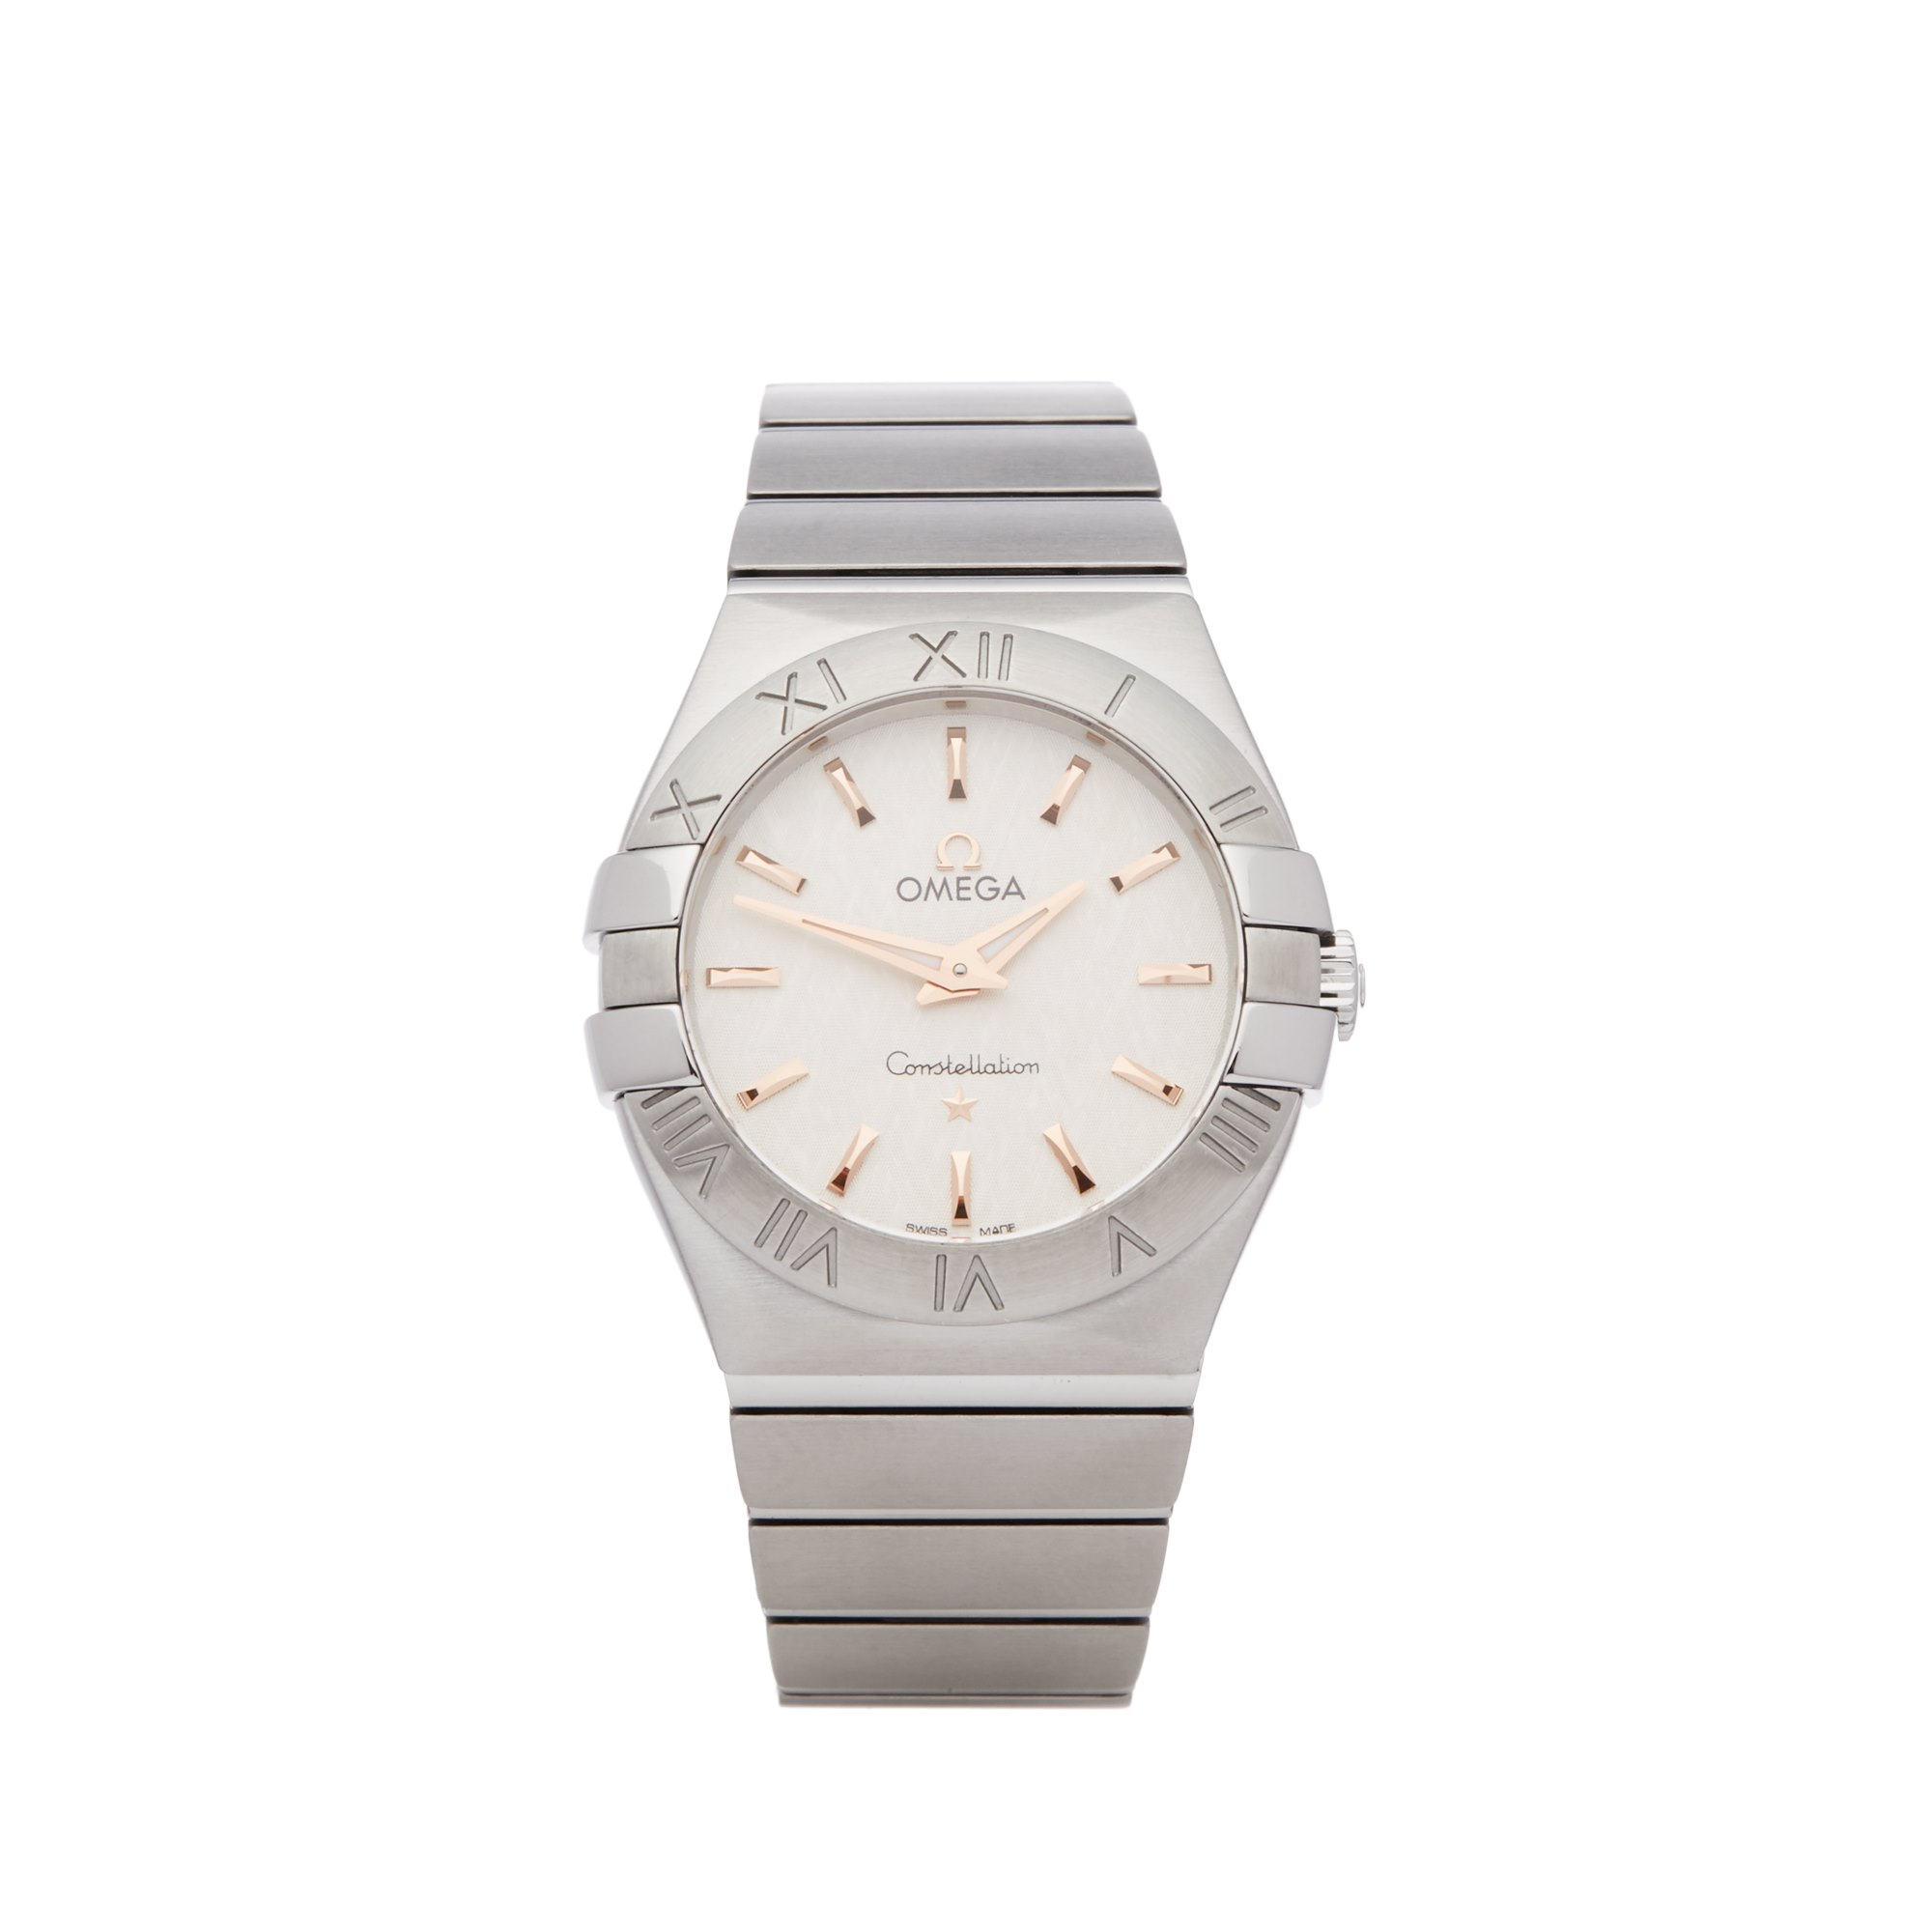 Omega Constellation 0 123.10.27.60.02.004 Ladies Stainless Steel Watch - Image 2 of 8